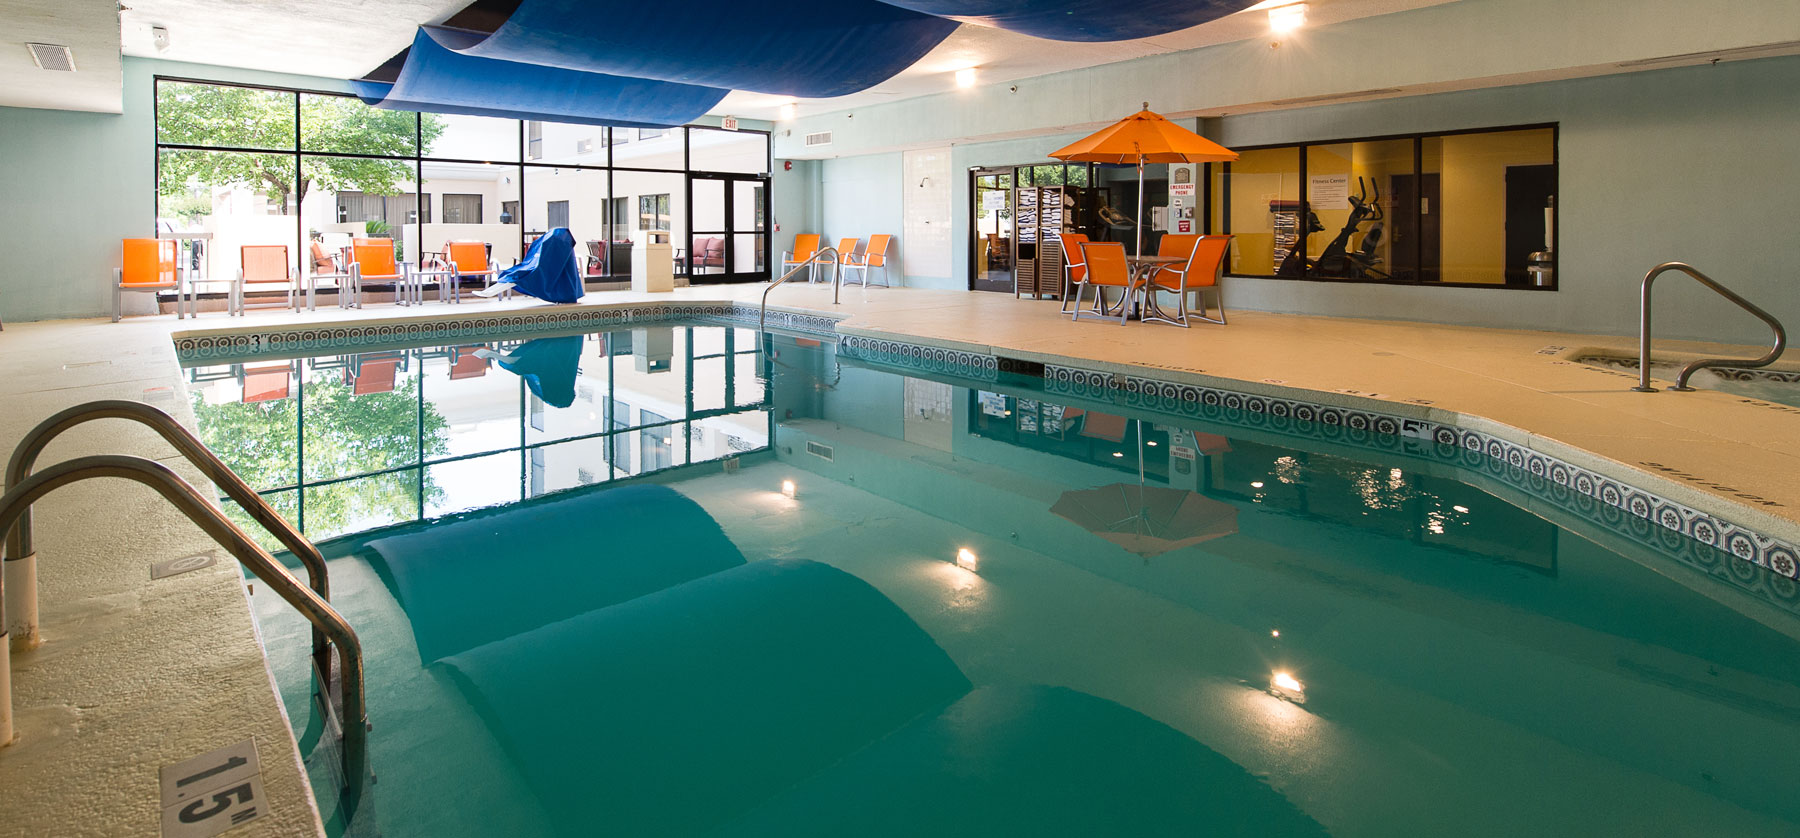 wilmington hotel with an indoor pool holiday inn. Black Bedroom Furniture Sets. Home Design Ideas